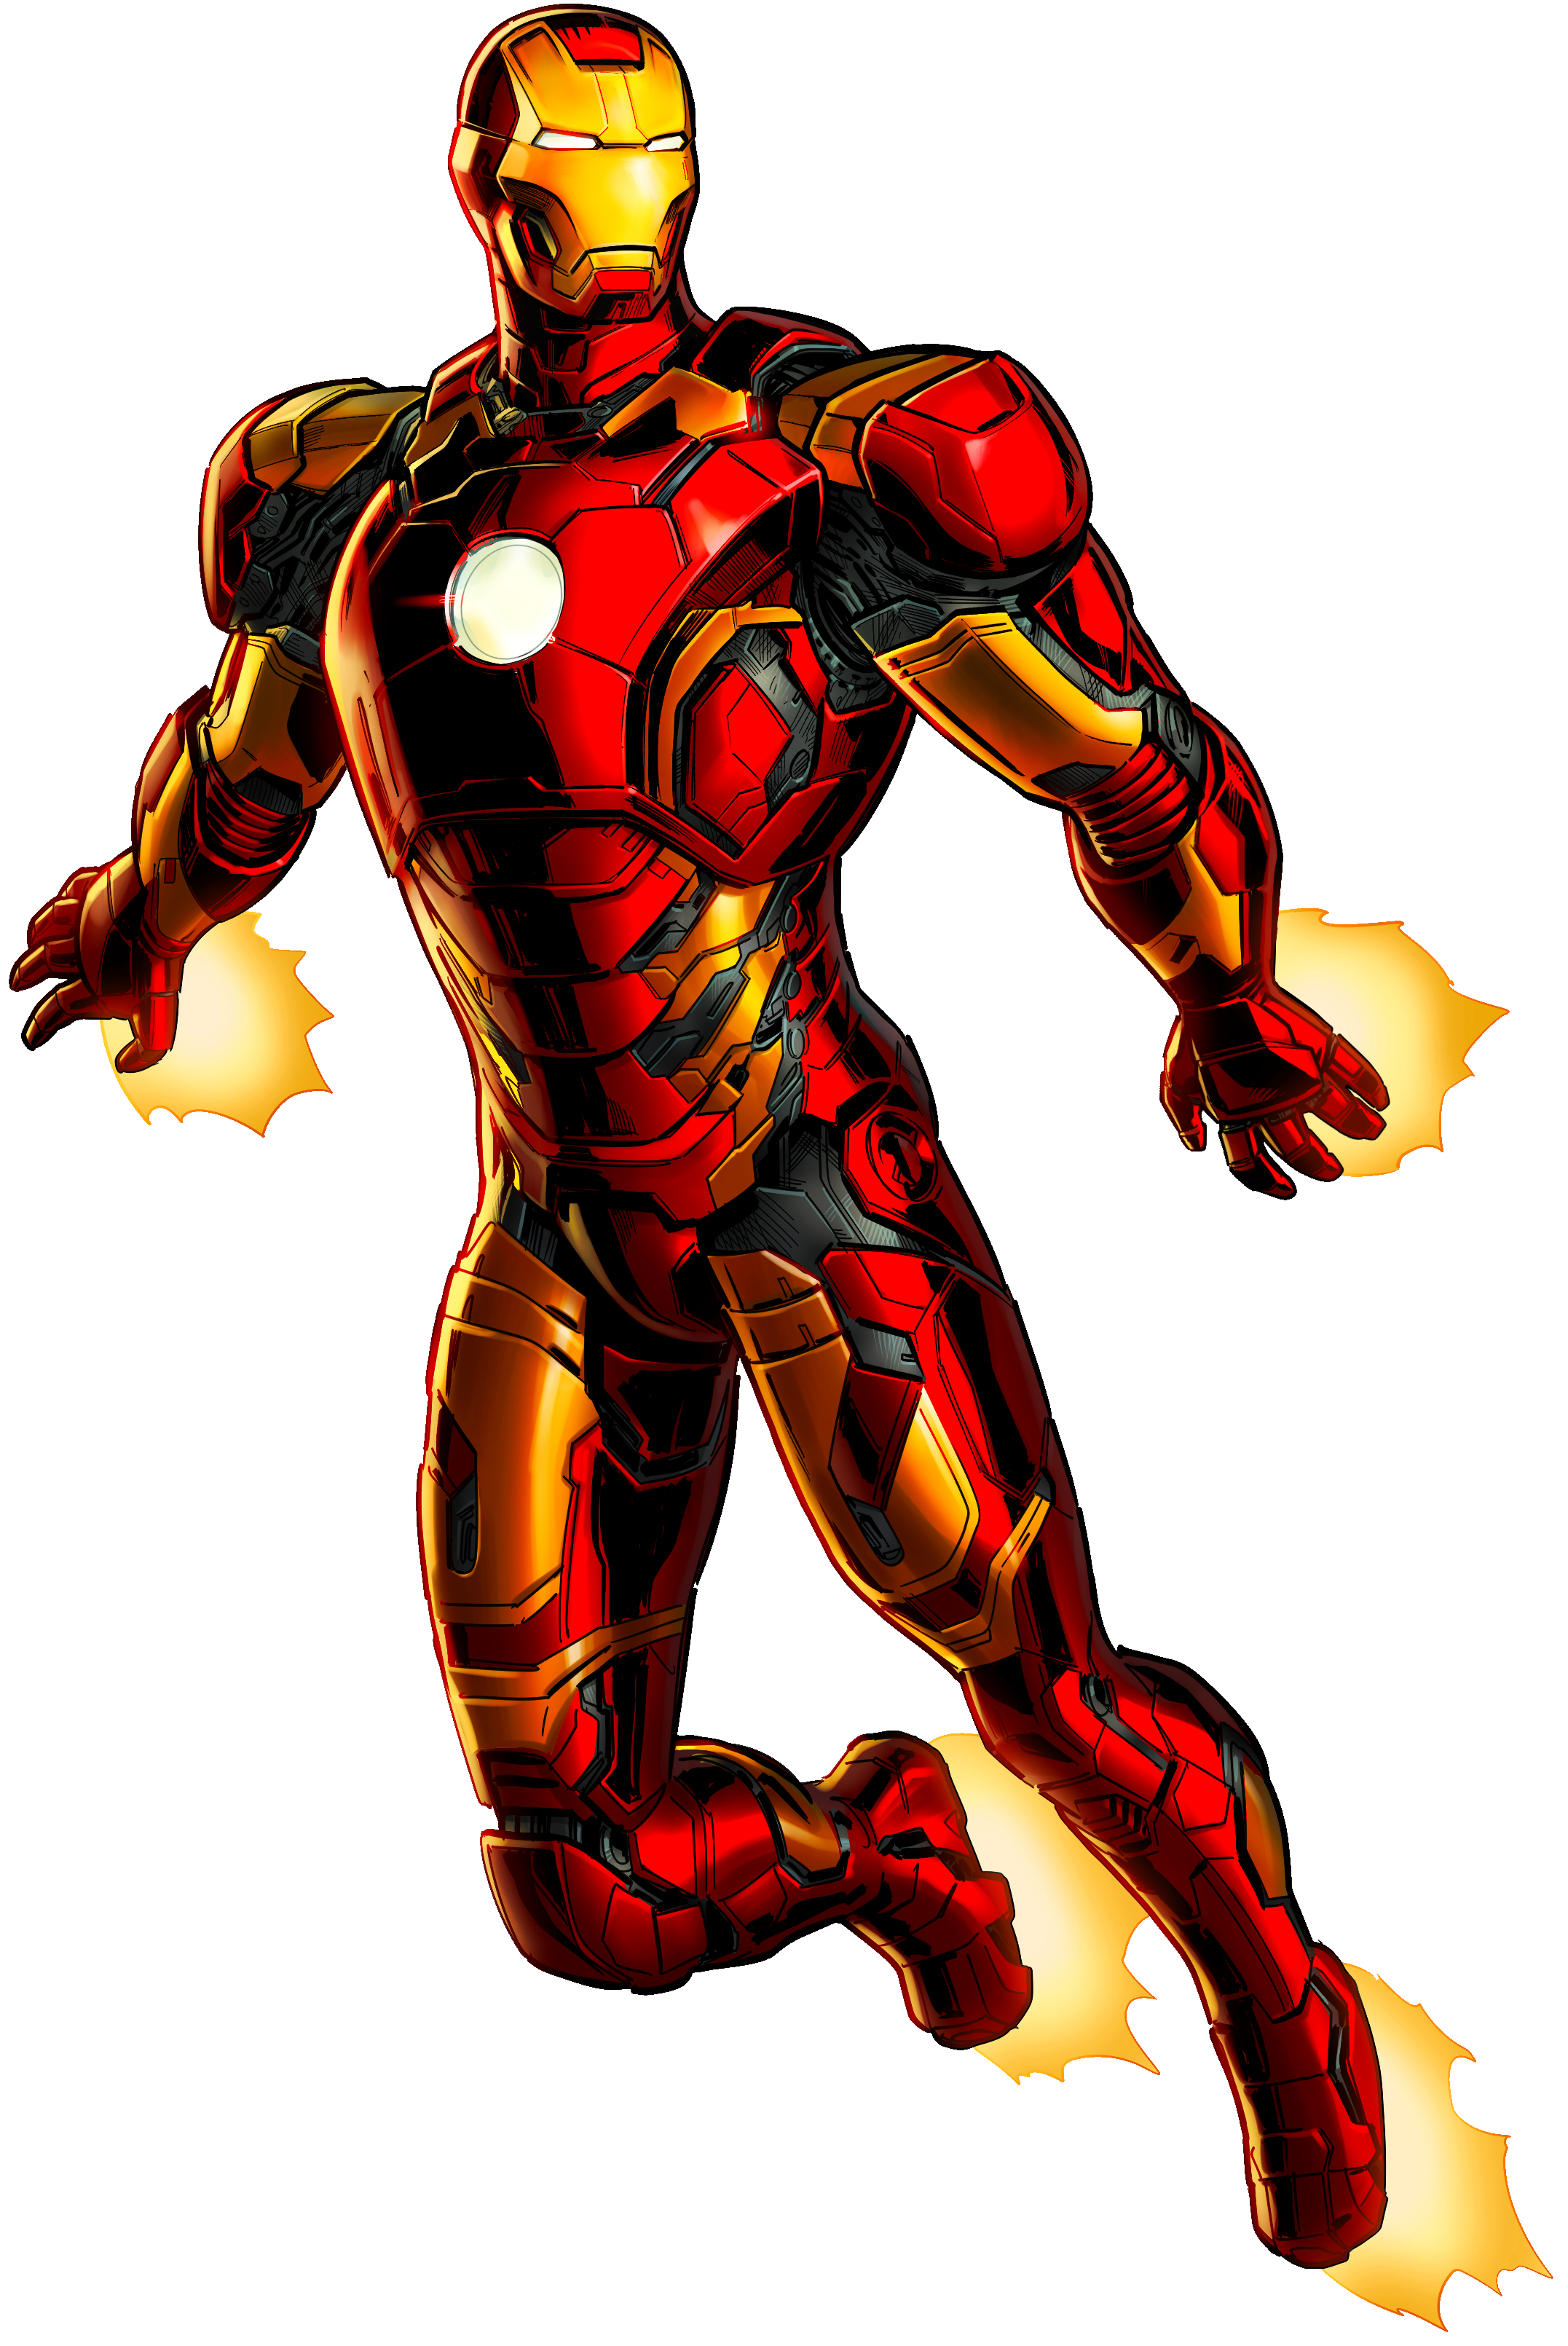 iron man aou by alexiscabo1 on deviantart. Black Bedroom Furniture Sets. Home Design Ideas